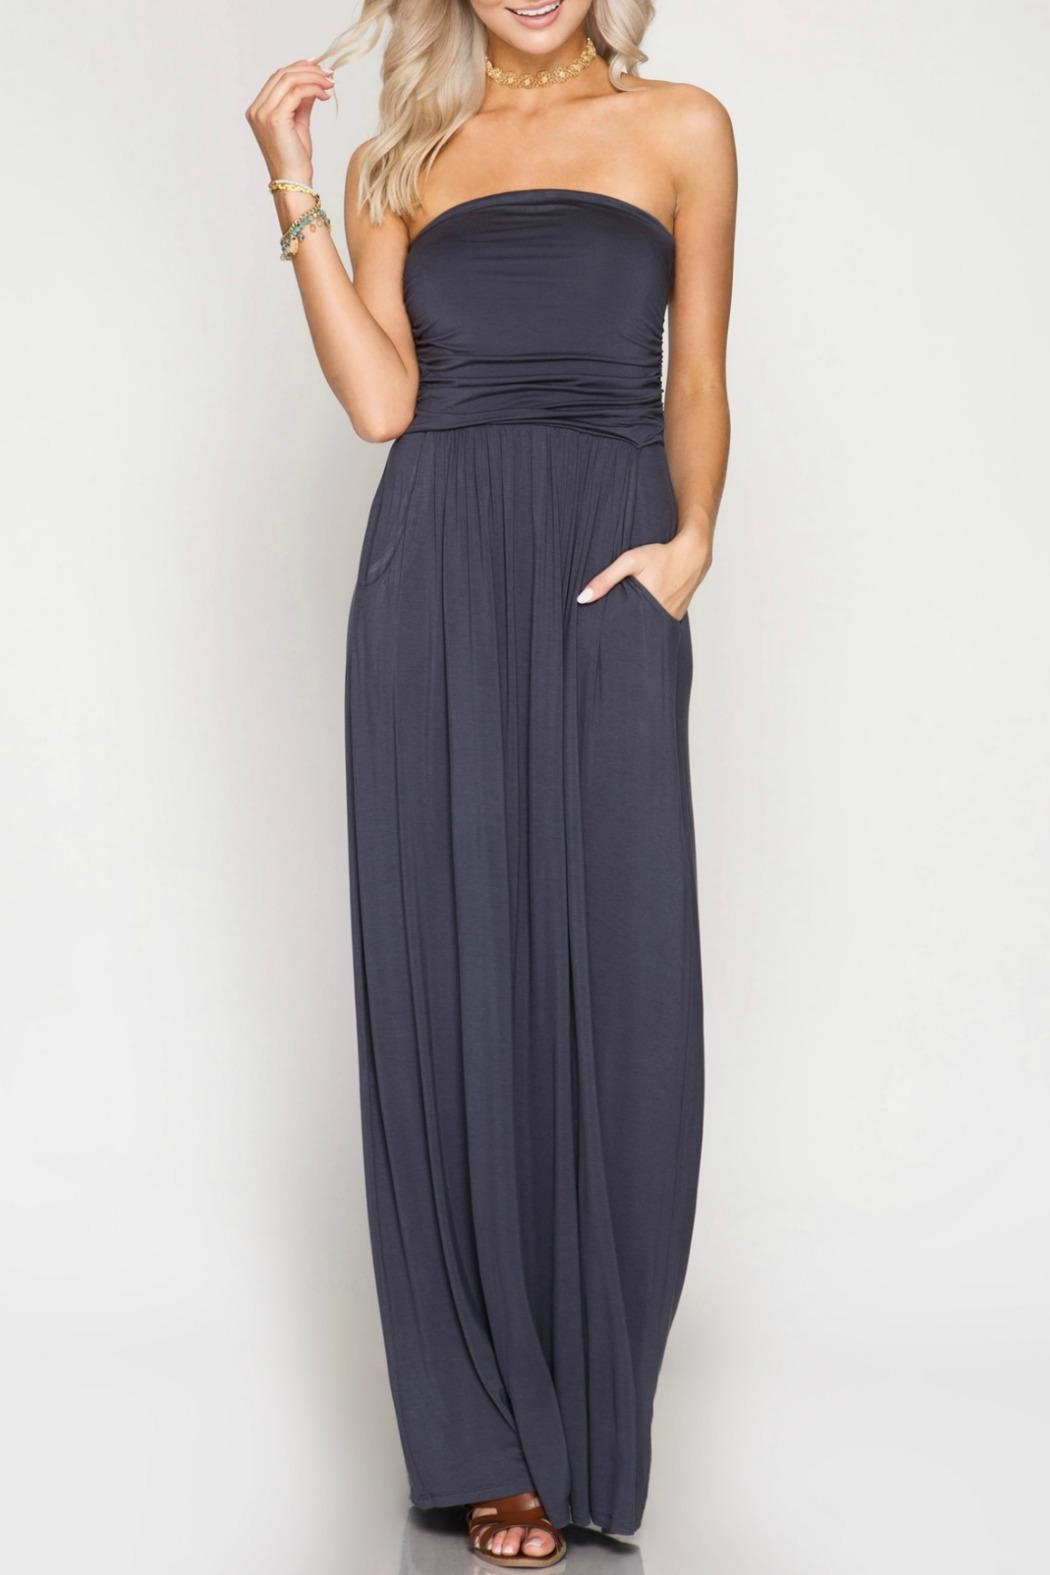 She + Sky Strapless Maxi Dress - Front Cropped Image